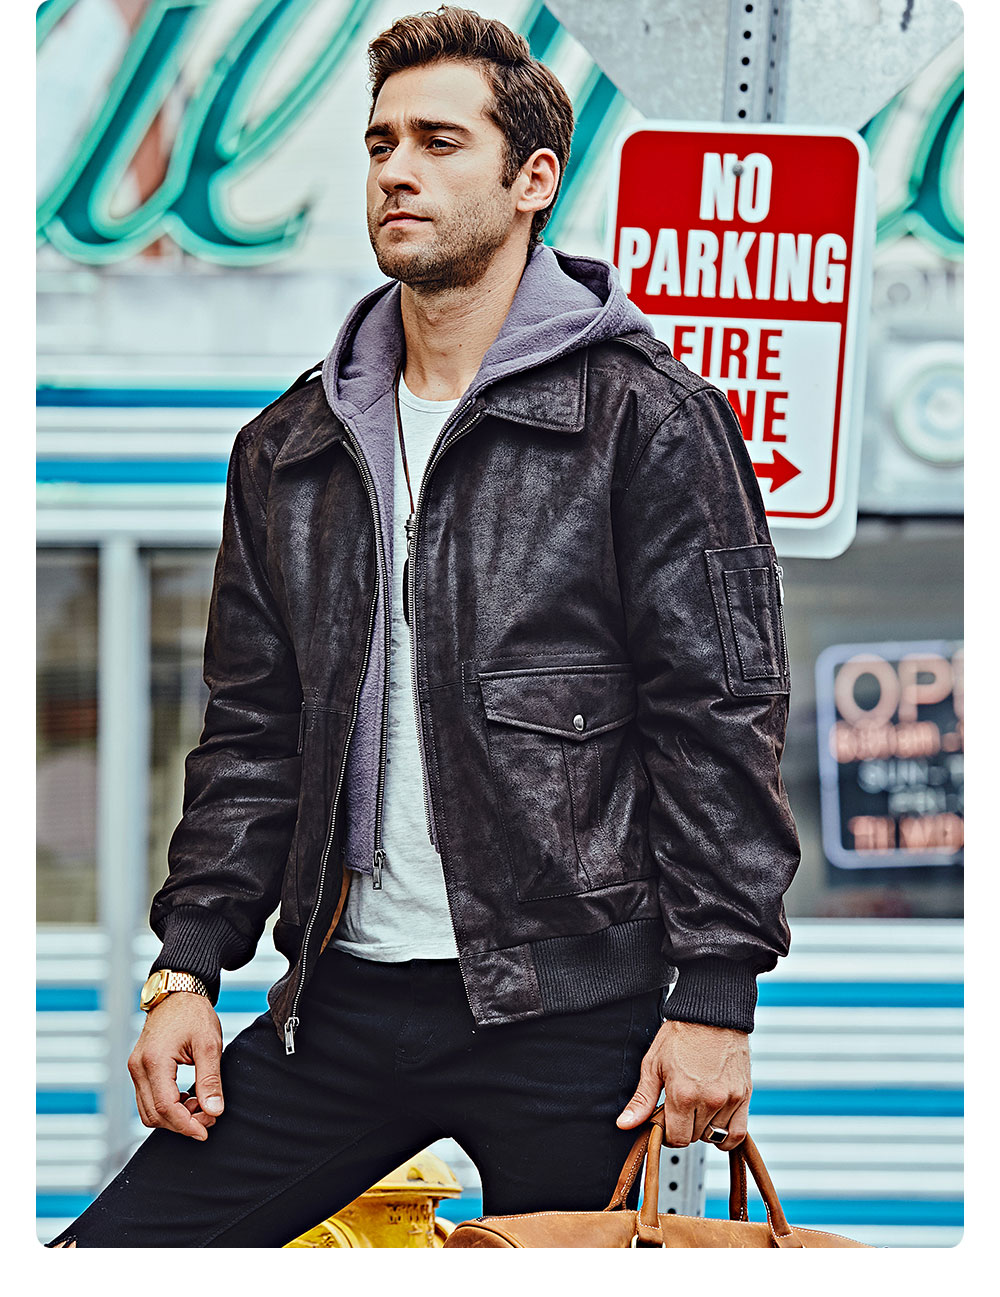 H66f9abdf05eb49429ba2f249a2e08d92D FLAVOR New Men's Genuine Leather Bomber Jackets Removable Hood Men Air Forca Aviator winter coat Men Warm Real Leather Jacket